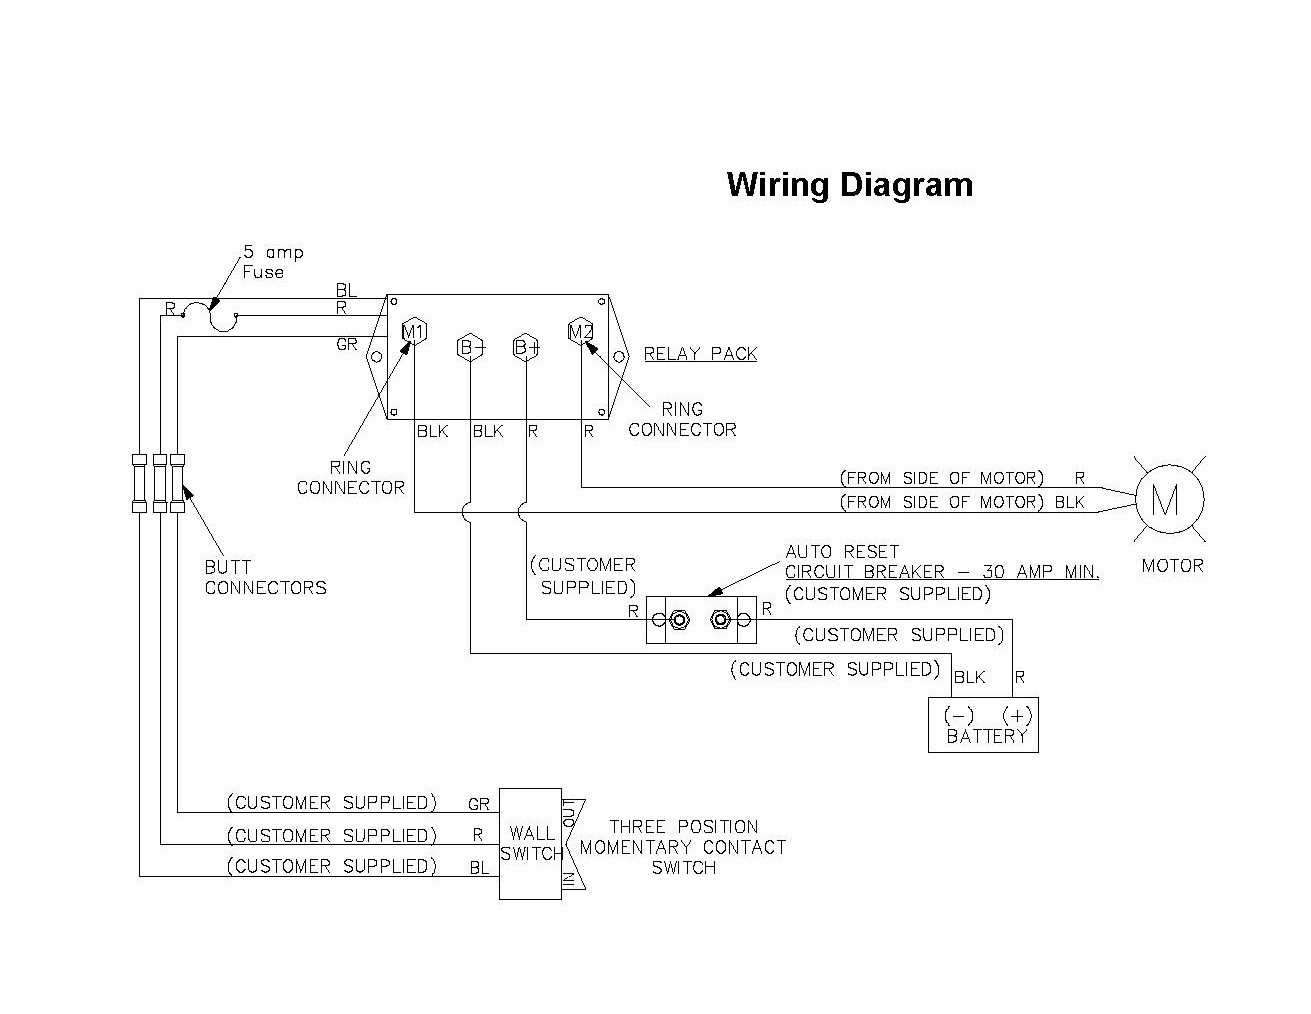 Electrical Schematic Gulfstream Rv Wiring Diagram from static-cdn.imageservice.cloud